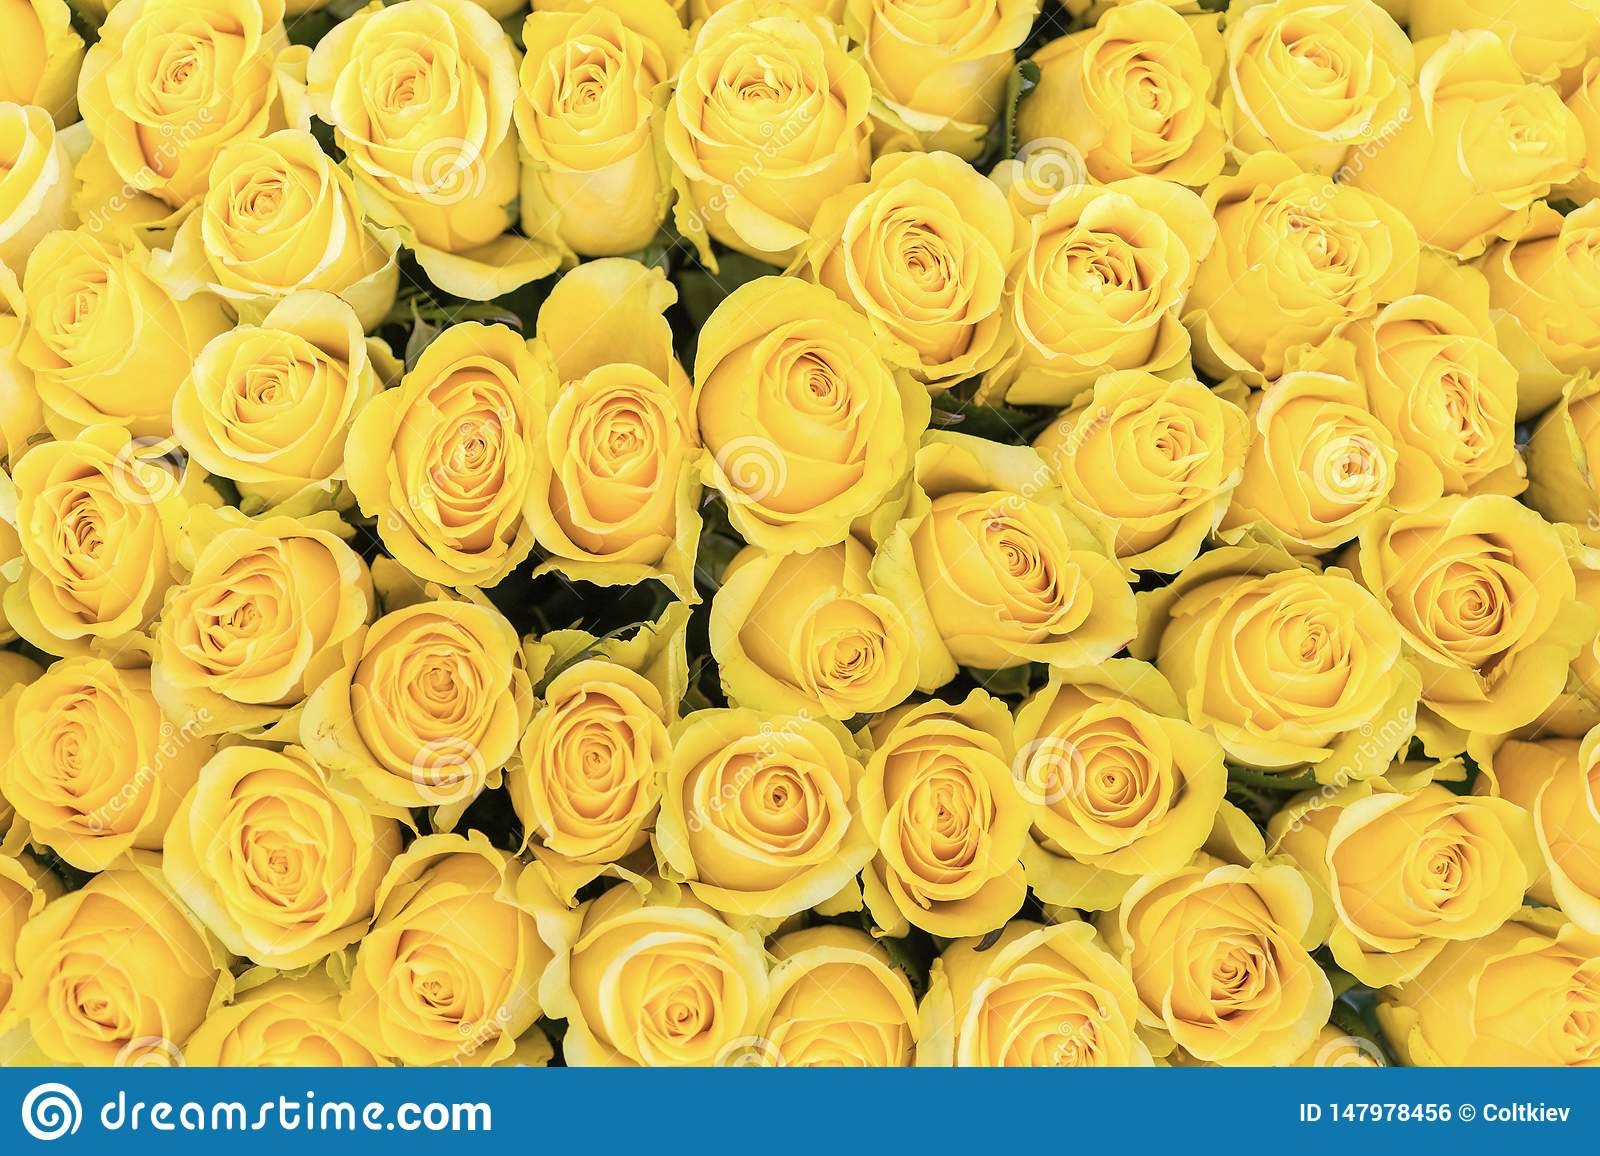 55 812 Yellow Roses Background Photos Free Royalty Free Stock Photos From Dreamstime